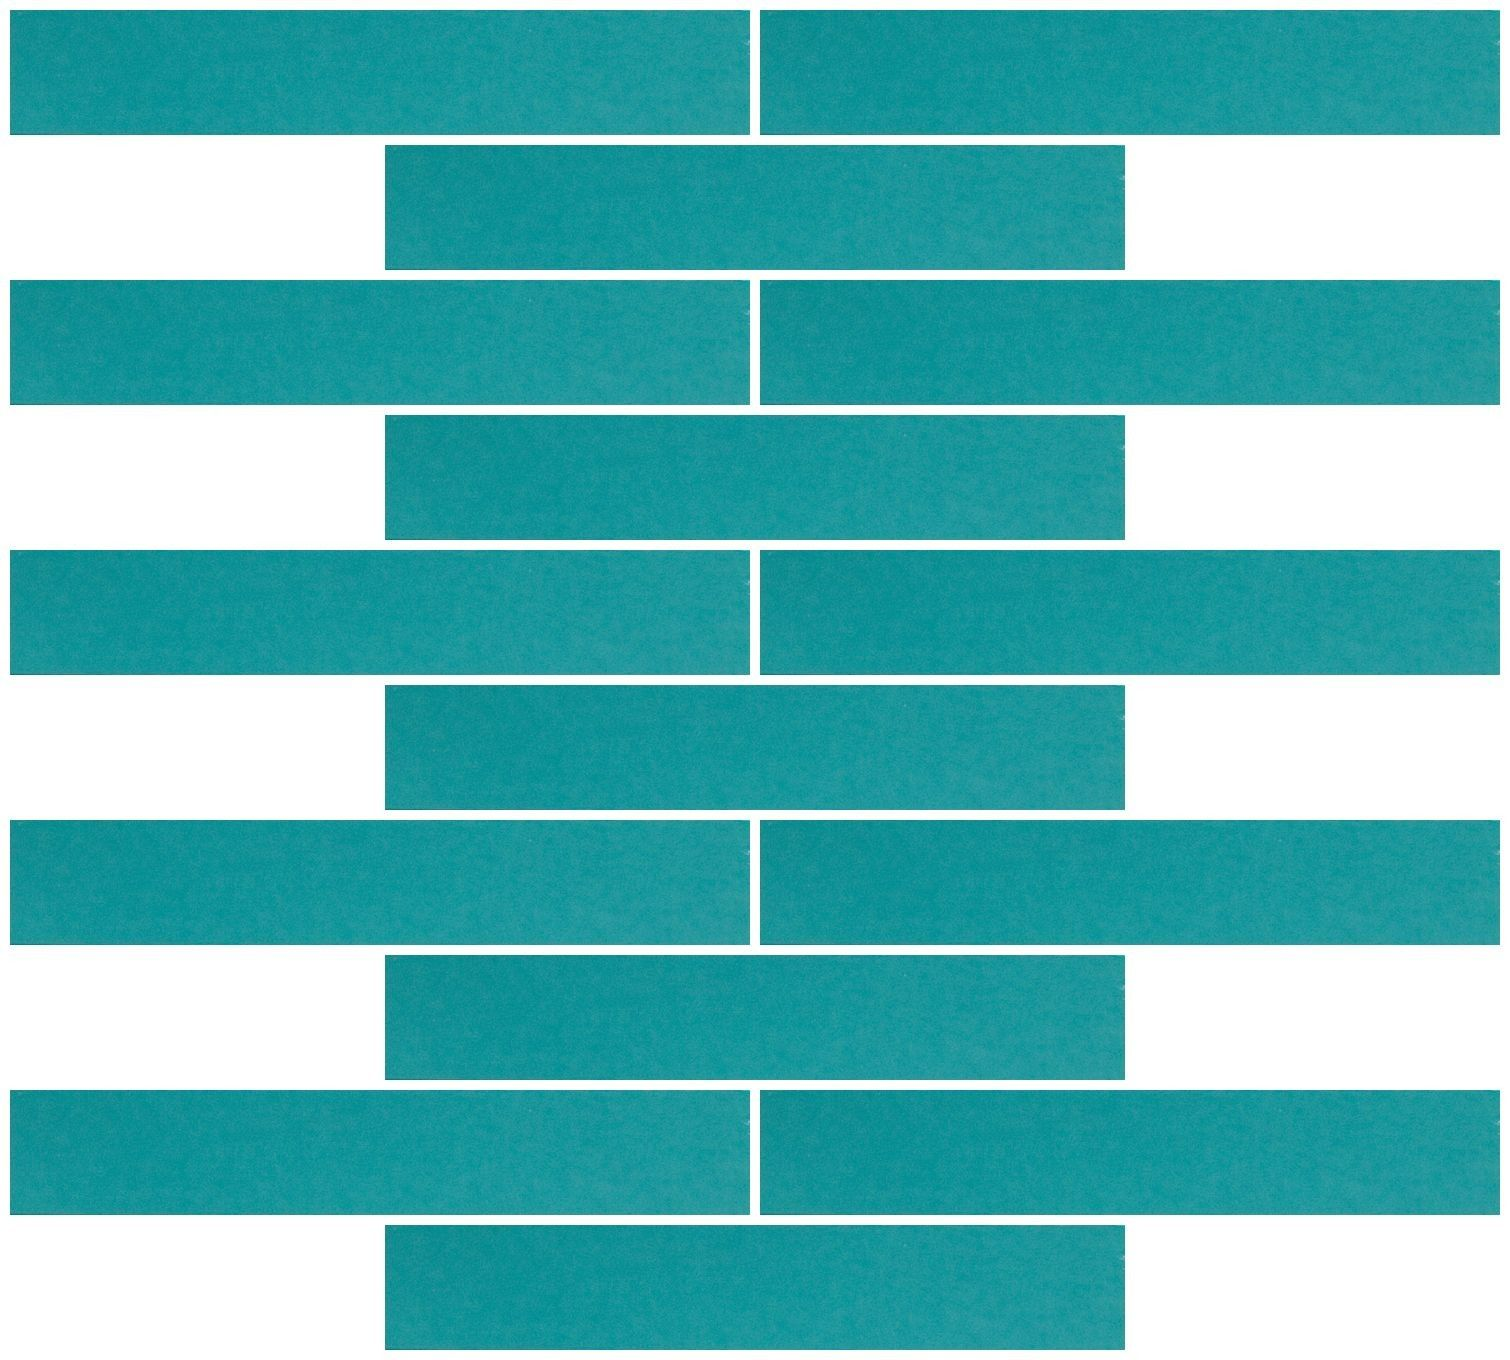 1x6 Inch Teal Blue Mirror Glass Subway Tile Reset In Running-brick ...